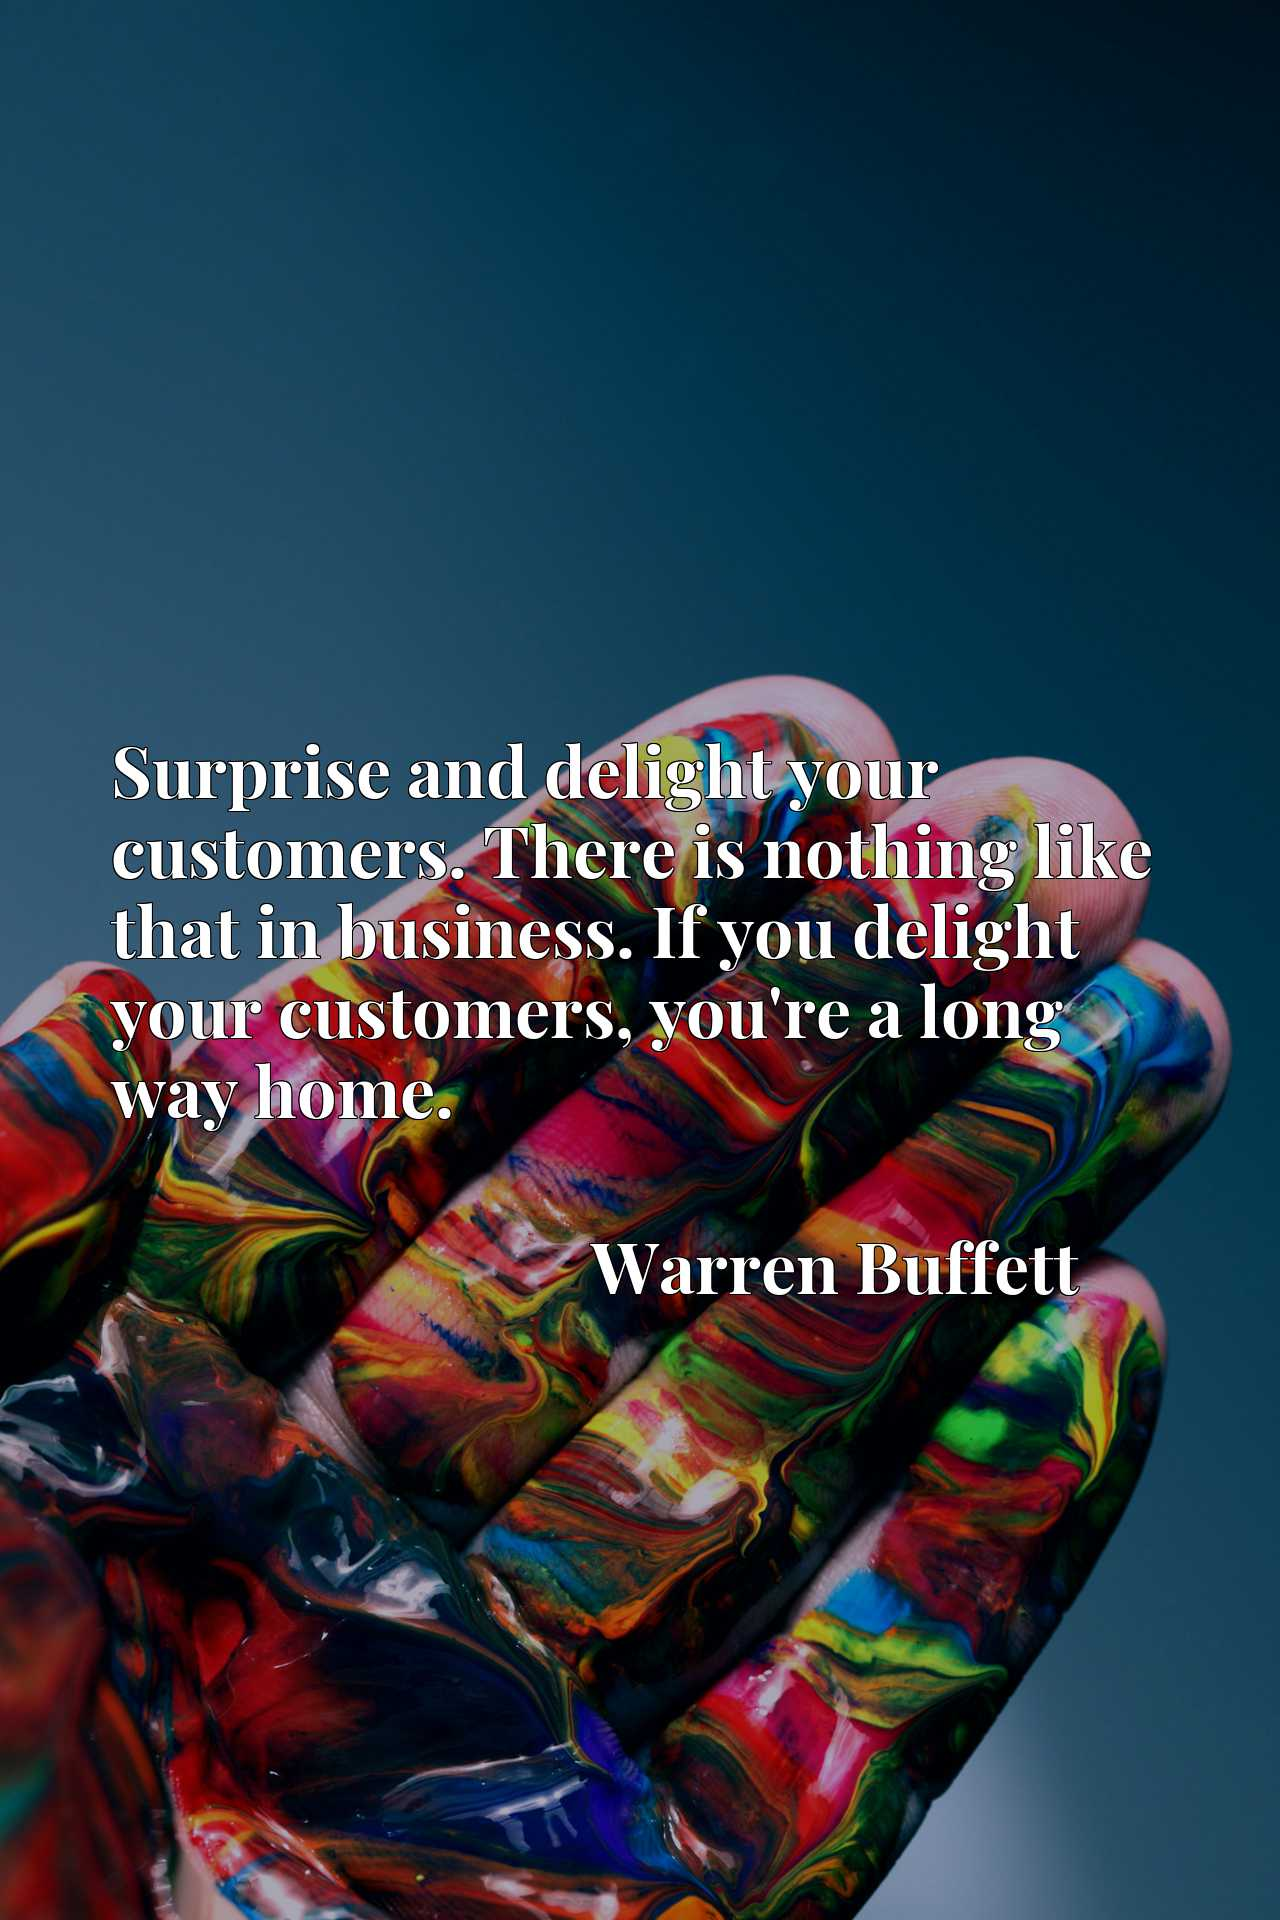 Surprise and delight your customers. There is nothing like that in business. If you delight your customers, you're a long way home.